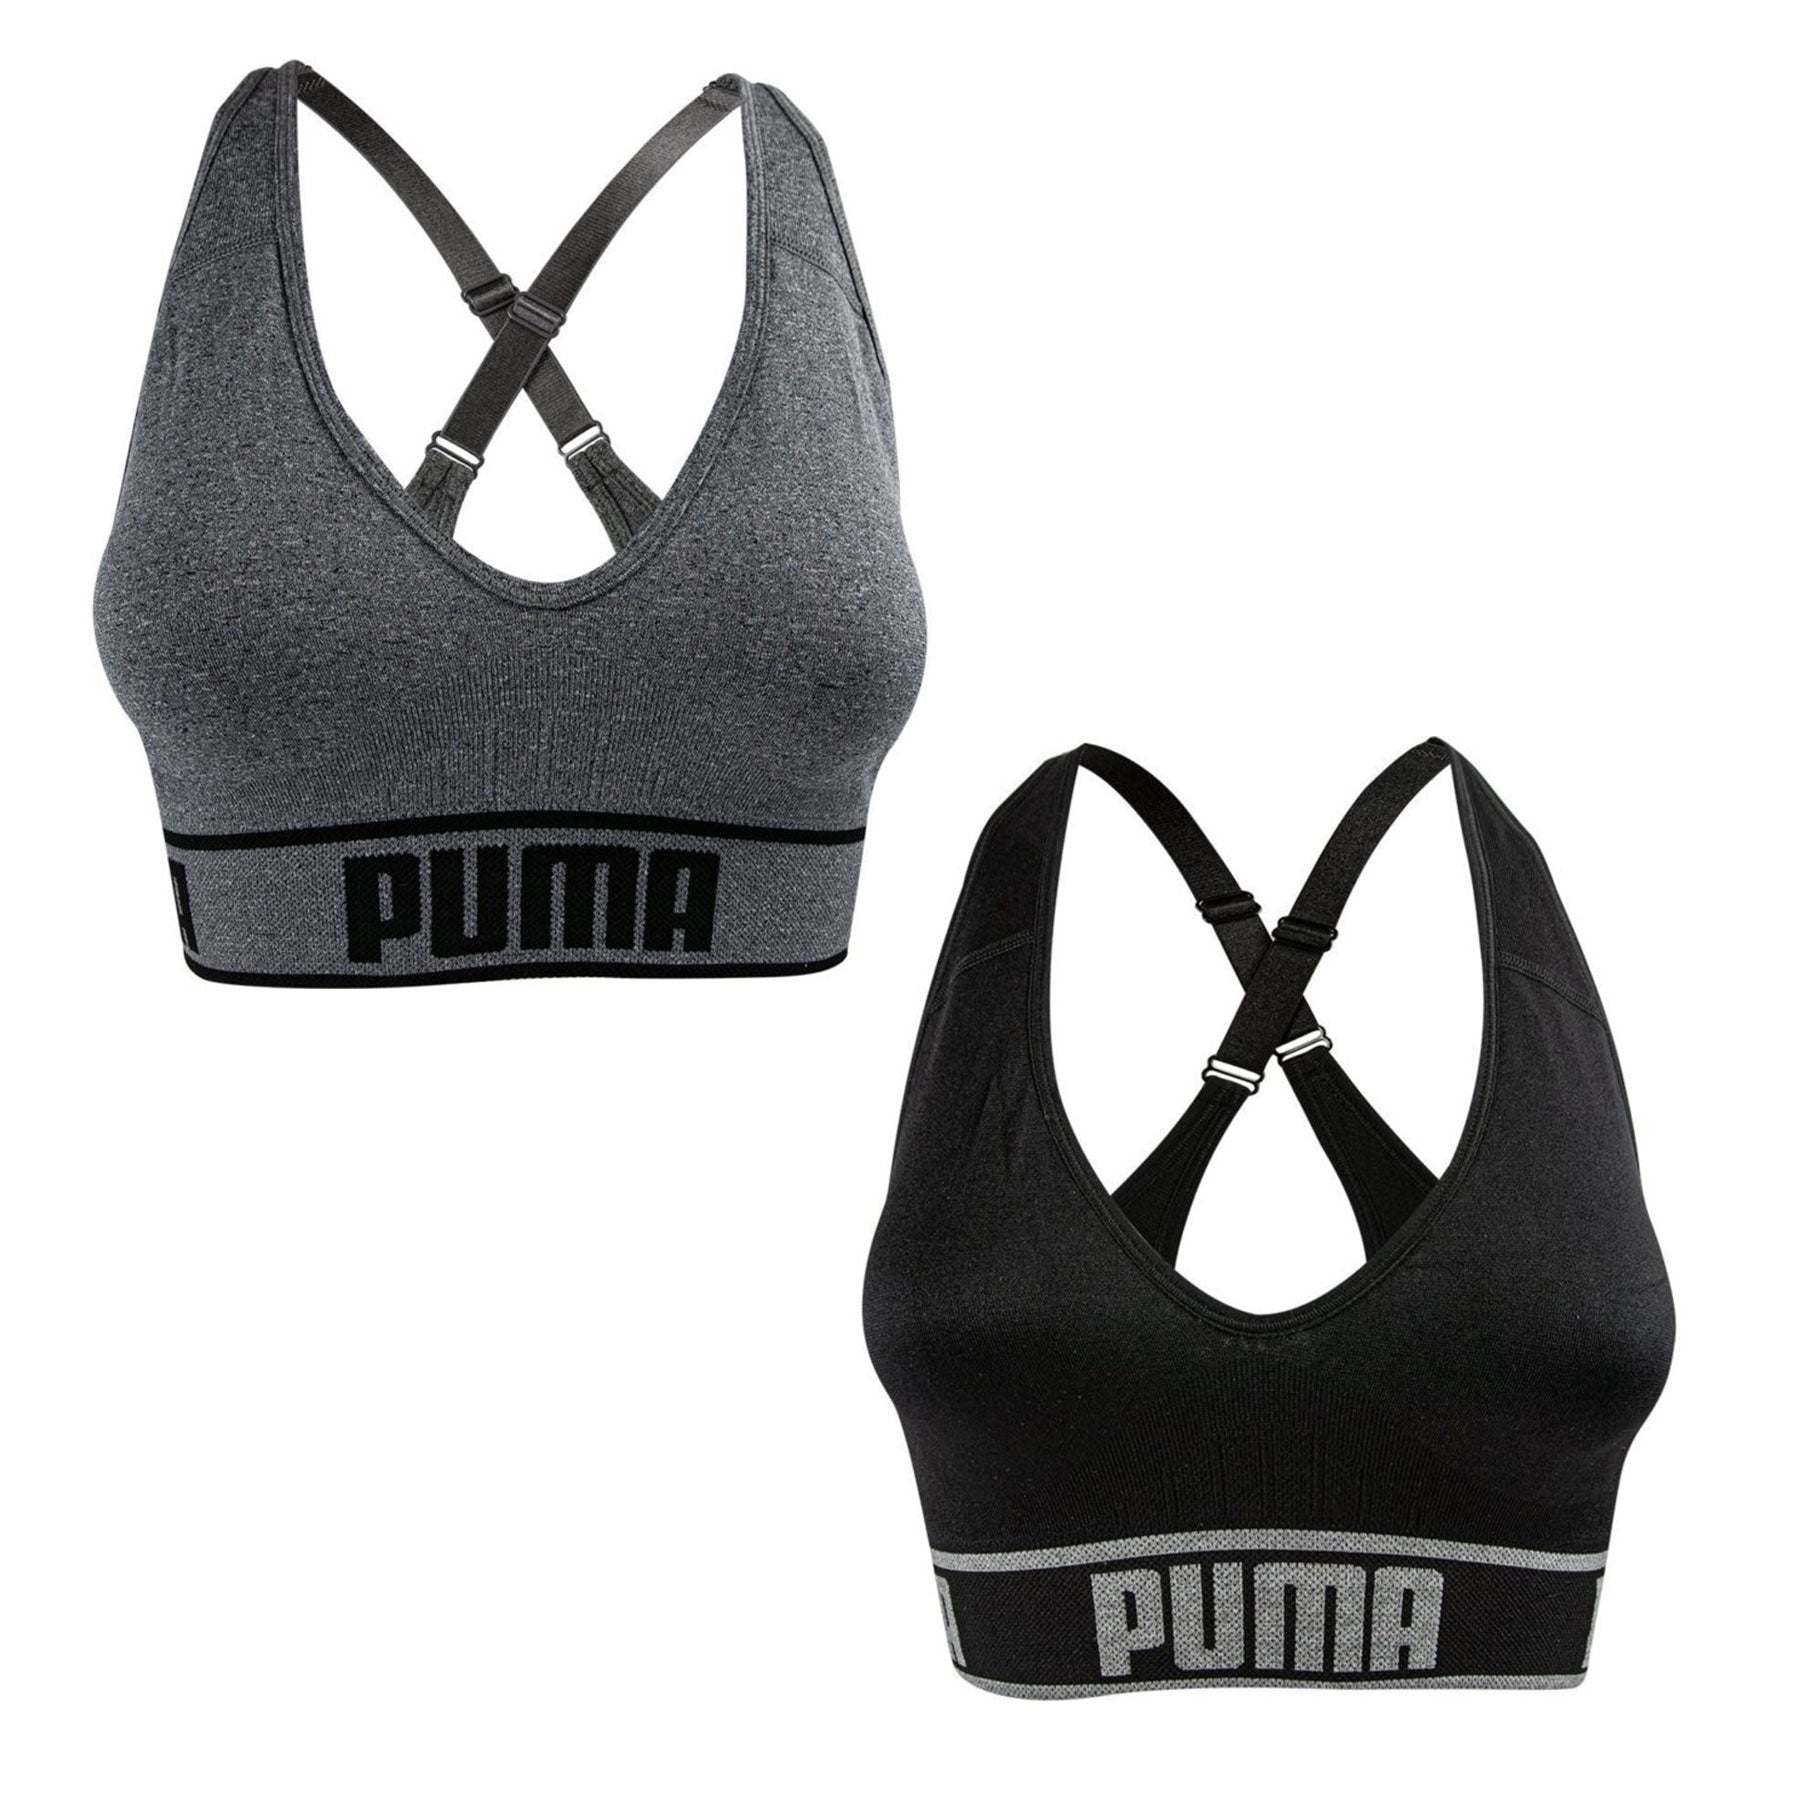 Puma Seamless Sports Bra 2 Pack